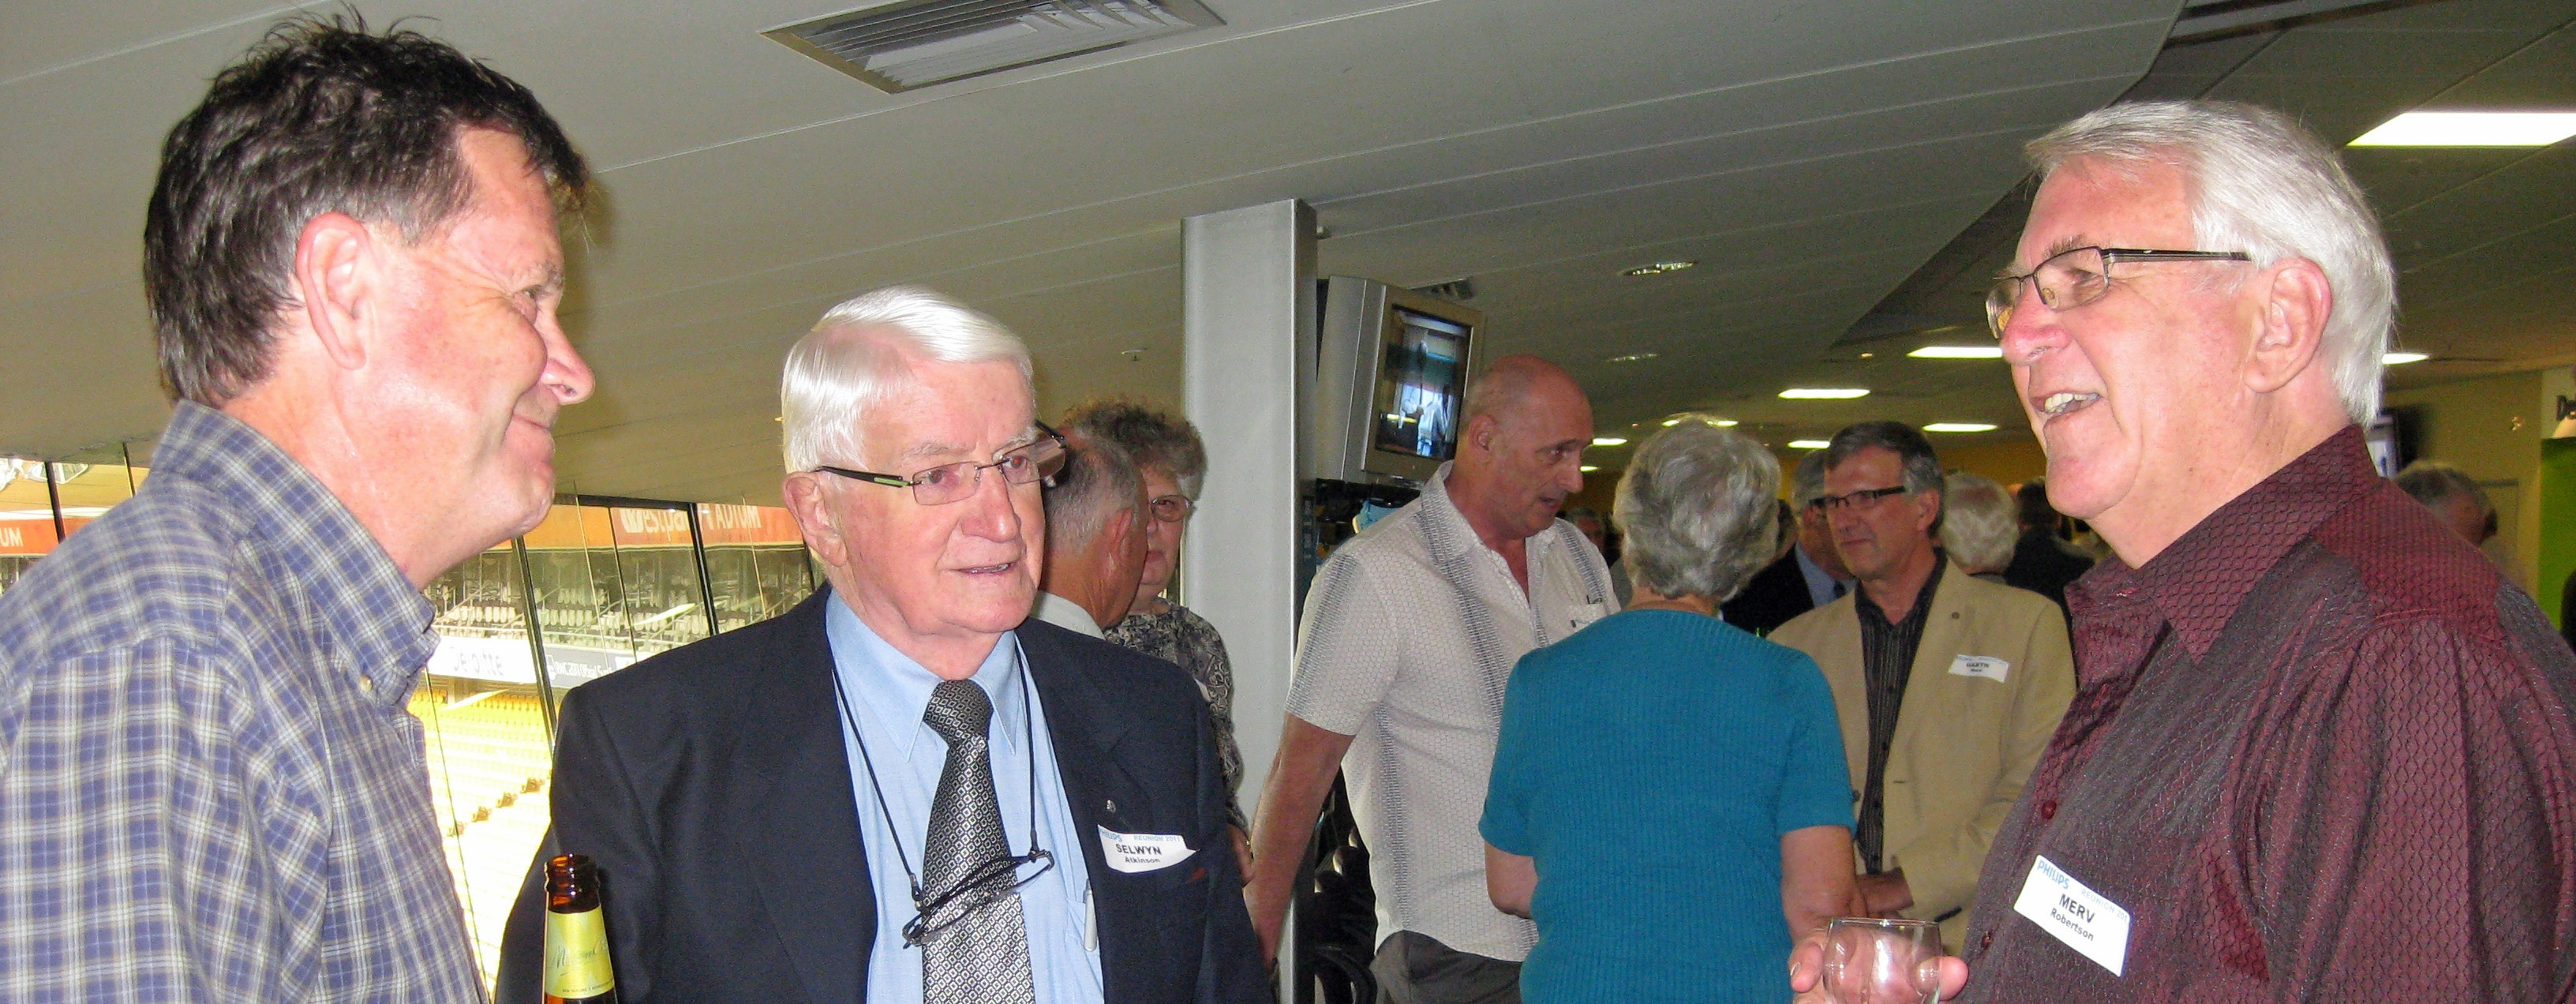 Above: Selwyn Atkinson (centre) at the Philips reunion in March 2011, flanked by Russell Hartnoll and Merv Robertson (right).